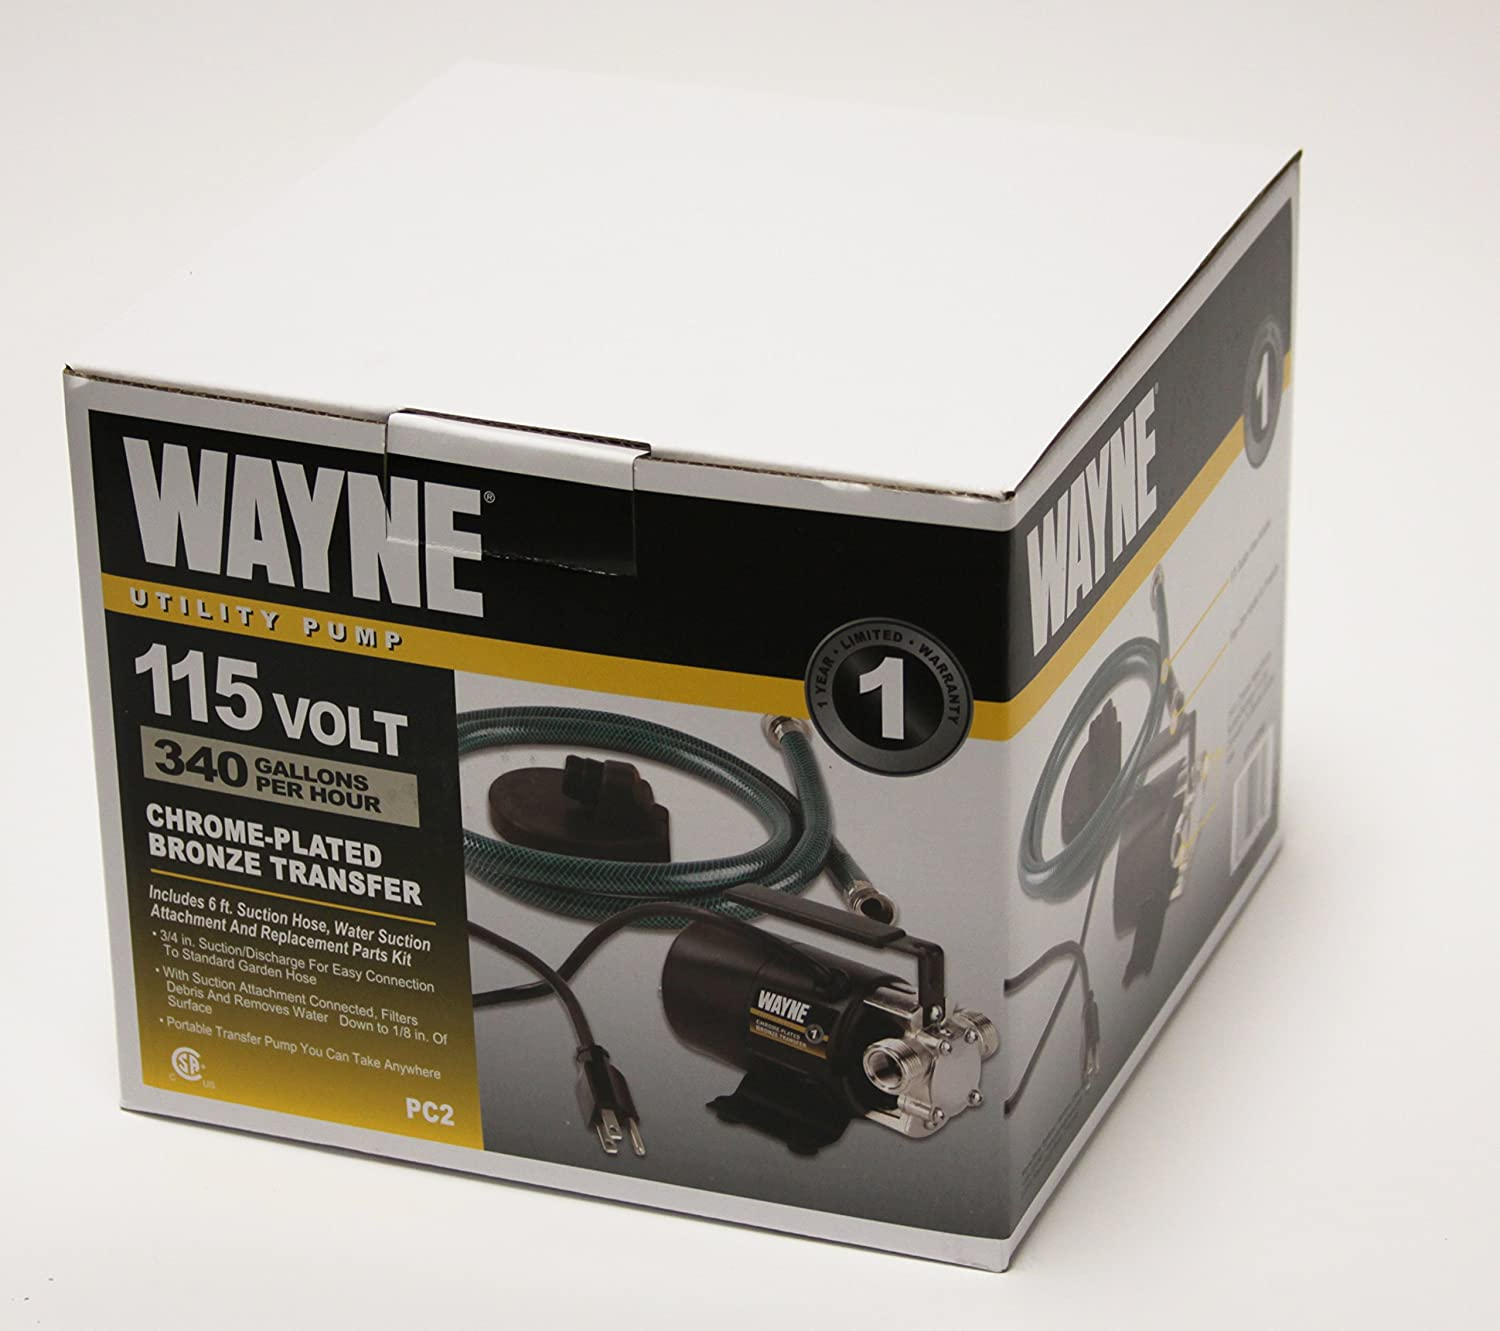 Wayne Pc2 Portable Transfer Water Pump With Suction Hose And